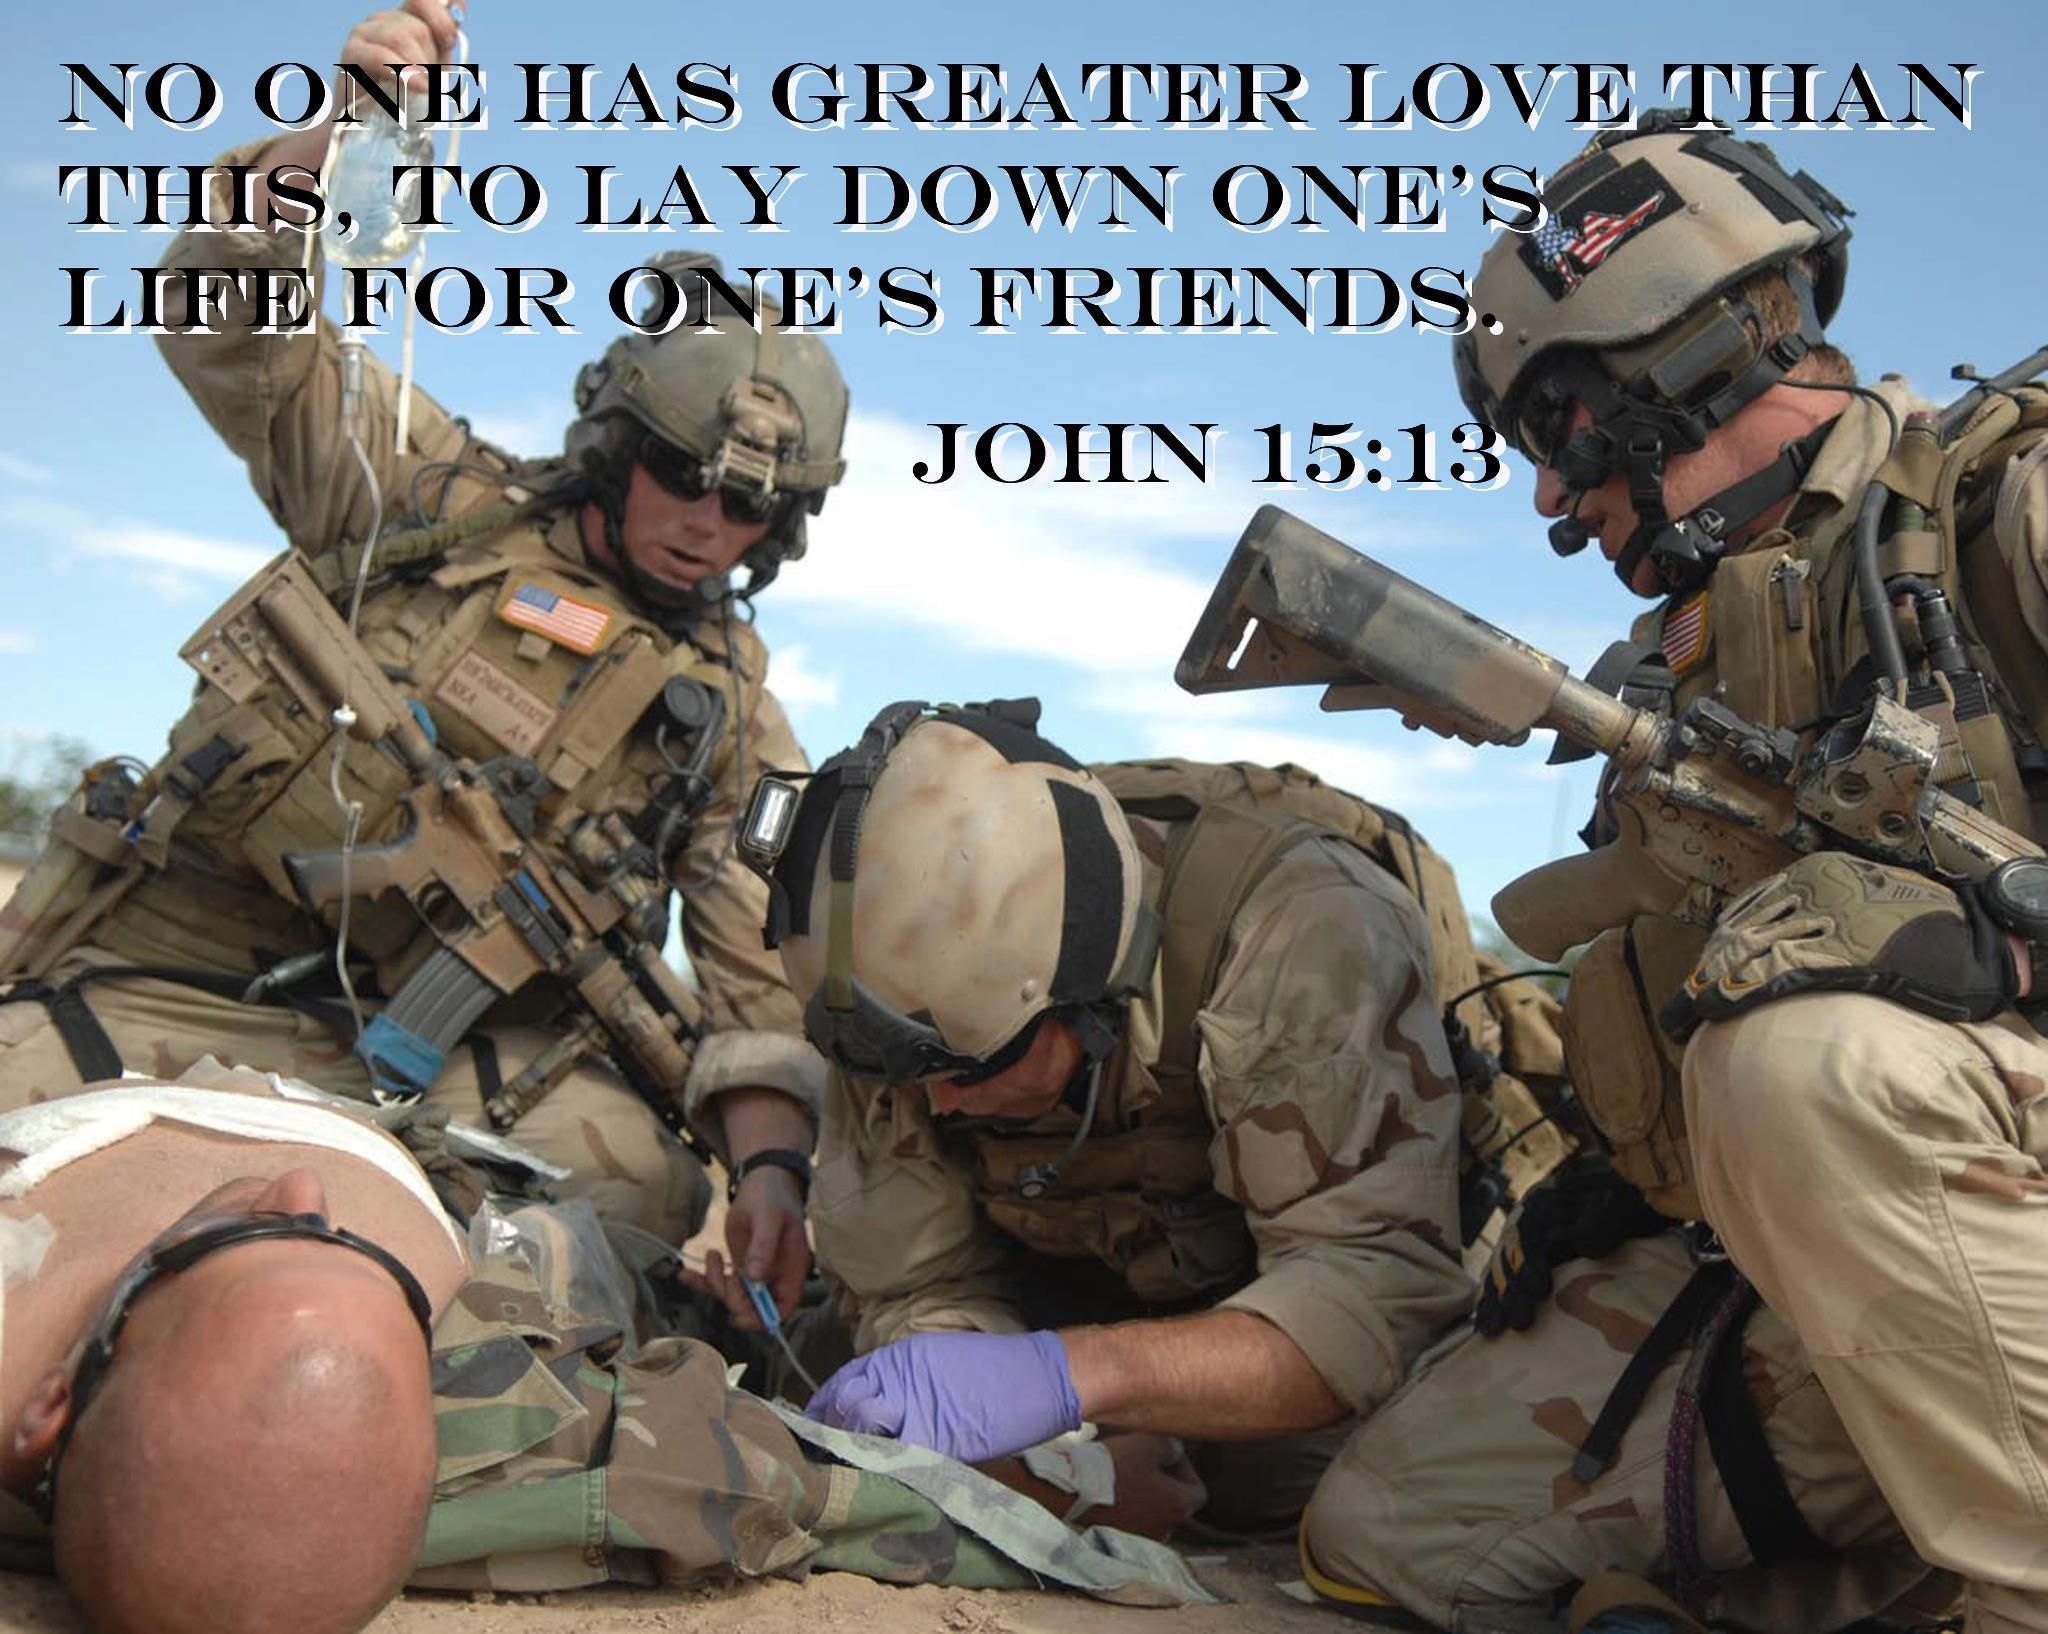 US Air Force Pararescue - John 15:13